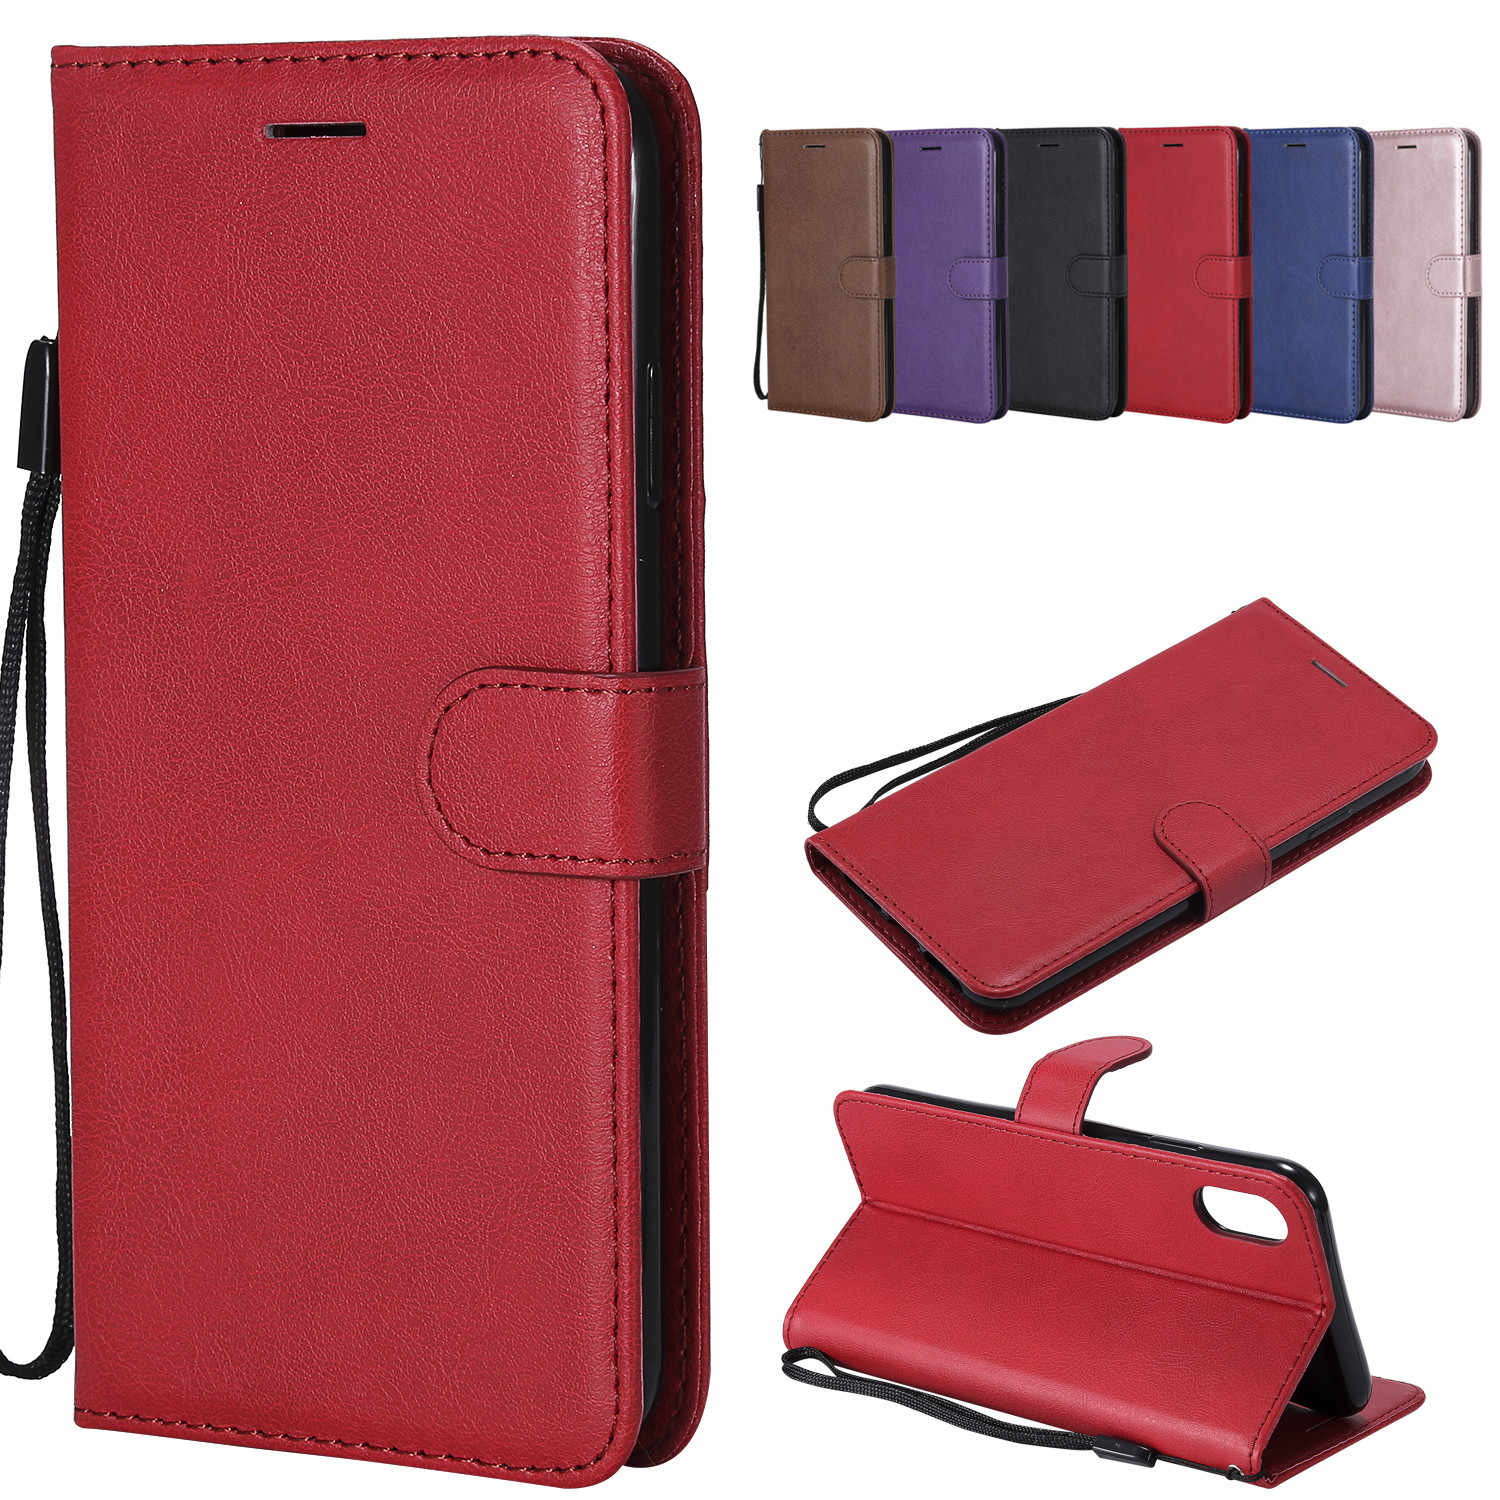 Leather Flip Case Voor Iphone 11 Pro Max X Xr Xs Max Case Wallet Card Slot Telefoon Cover Voor Iphone 5 5S 6 6S 7 8 Plus Case